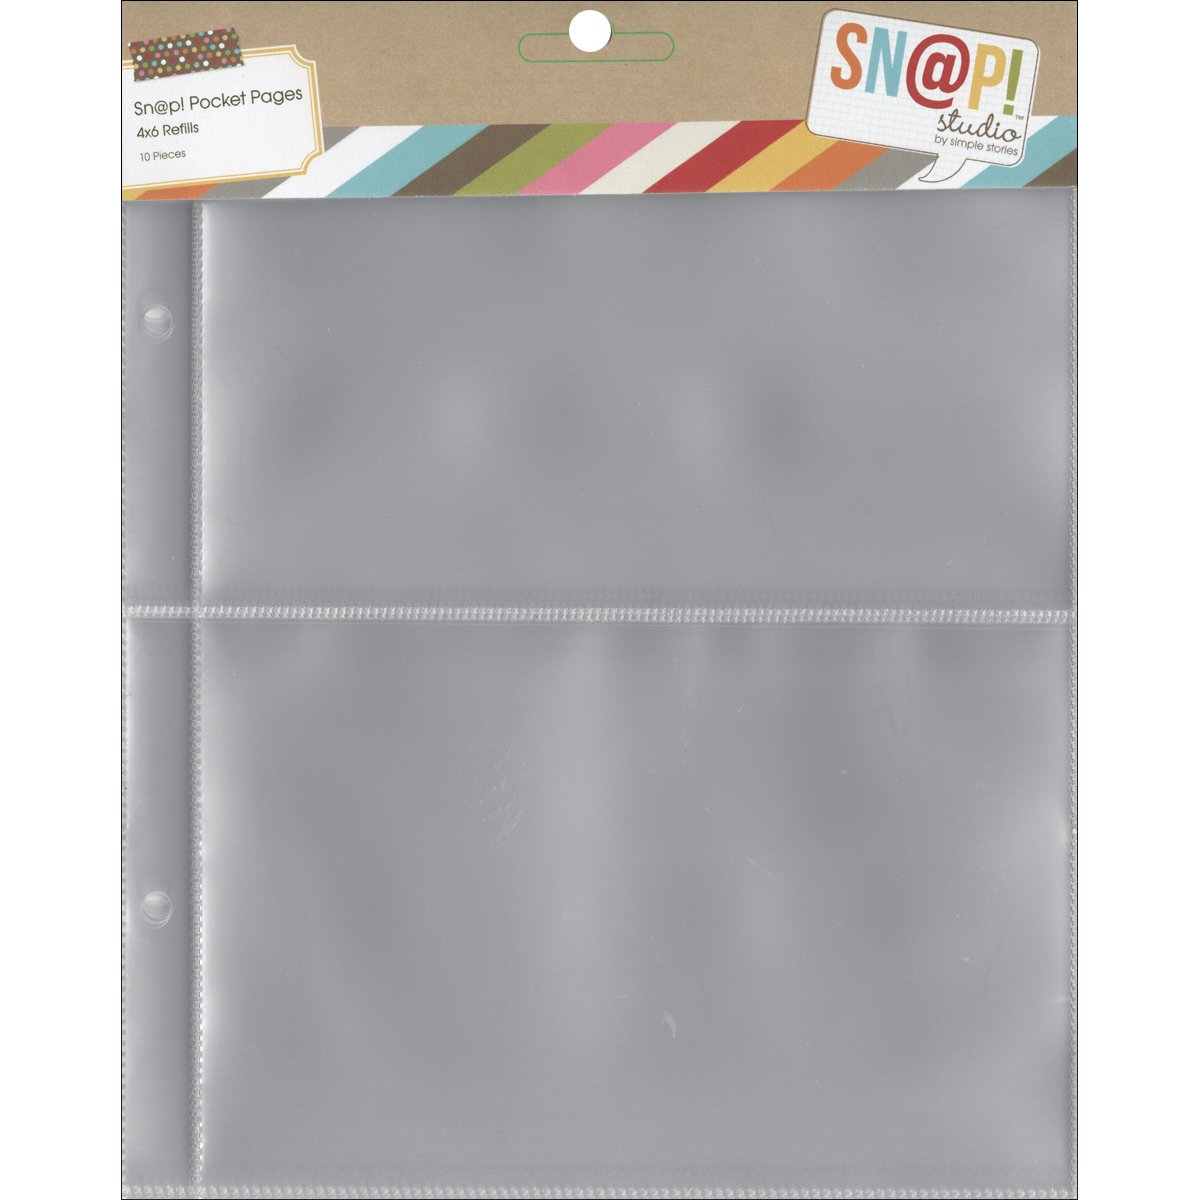 Simple Stories 6x8-inch Page Protectors with (2) 4x6-inch Divided Pockets, 10-Pack 2003